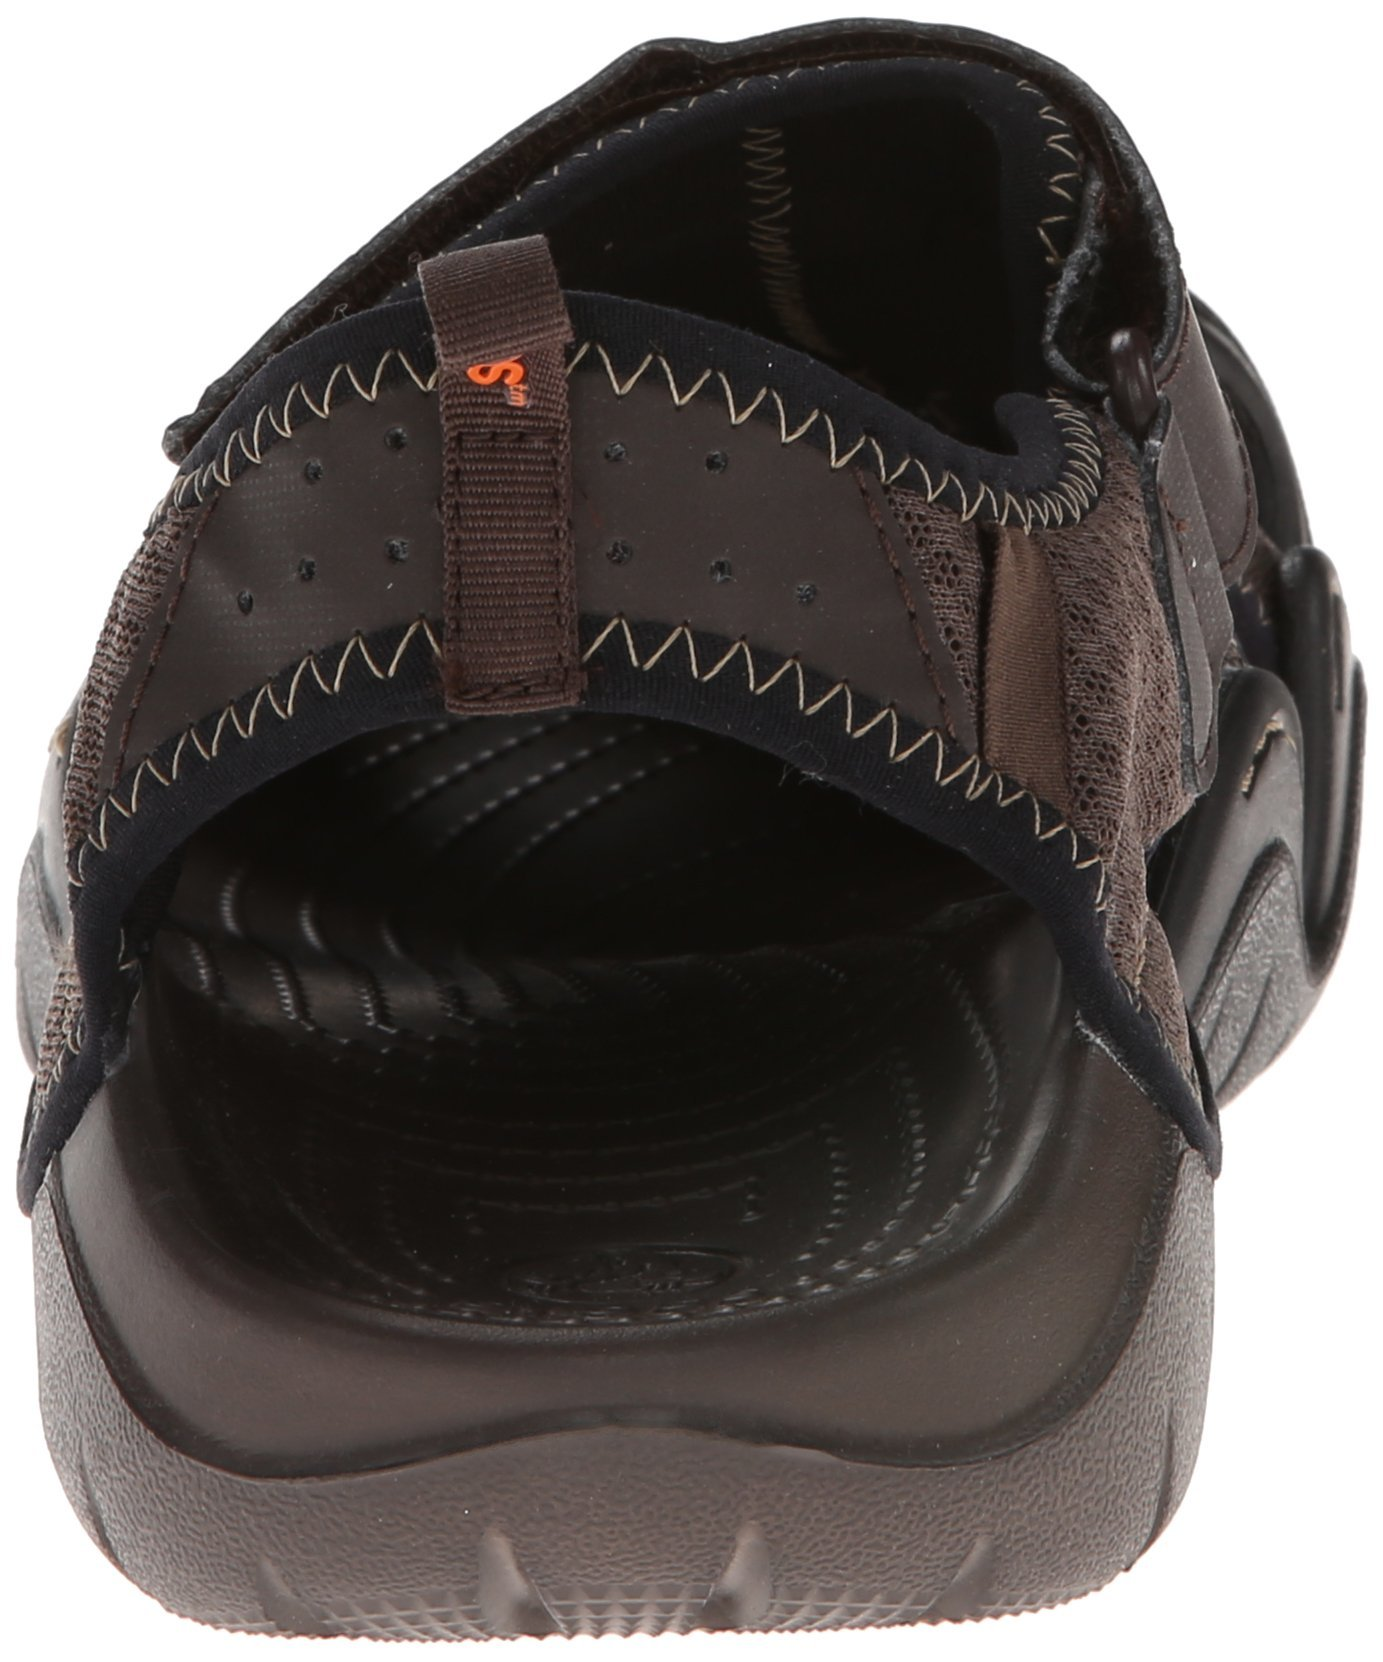 swiftwater single girls Check out this great deal on crocs - swiftwater sandal (black/black) women's sandals from crocs.